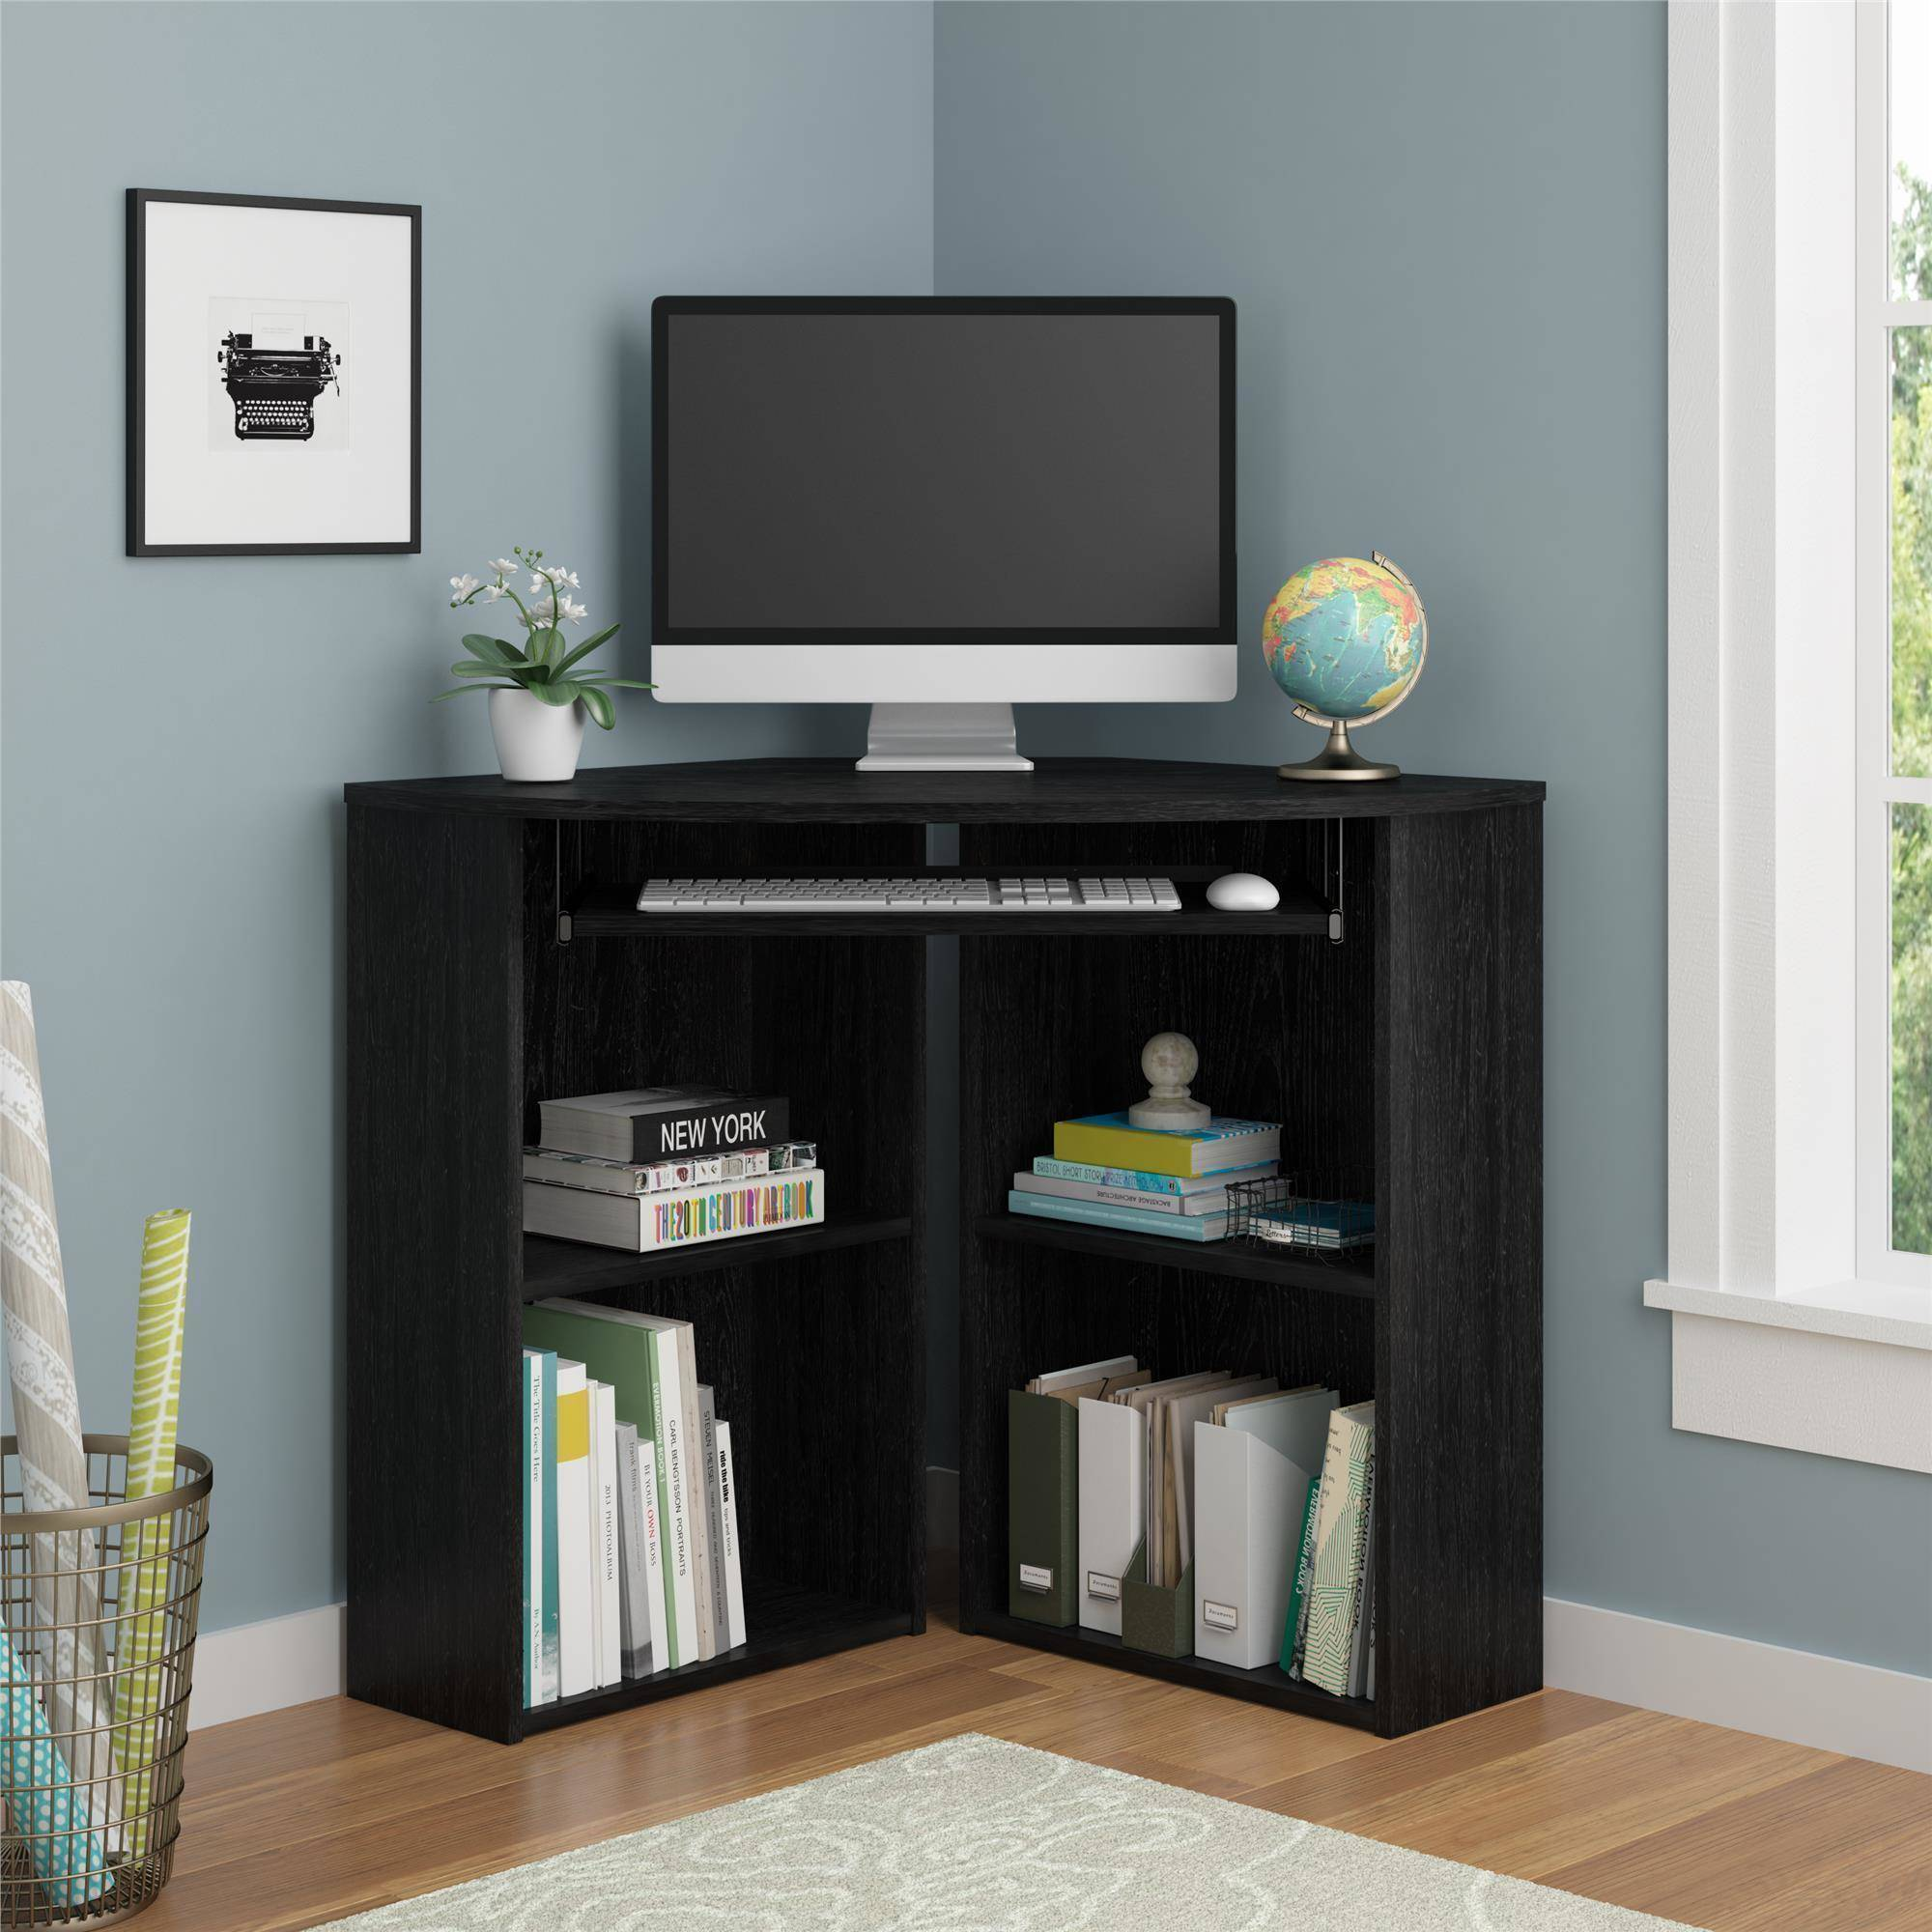 Mainstays Corner Desk With Keyboard Tray And Shelves